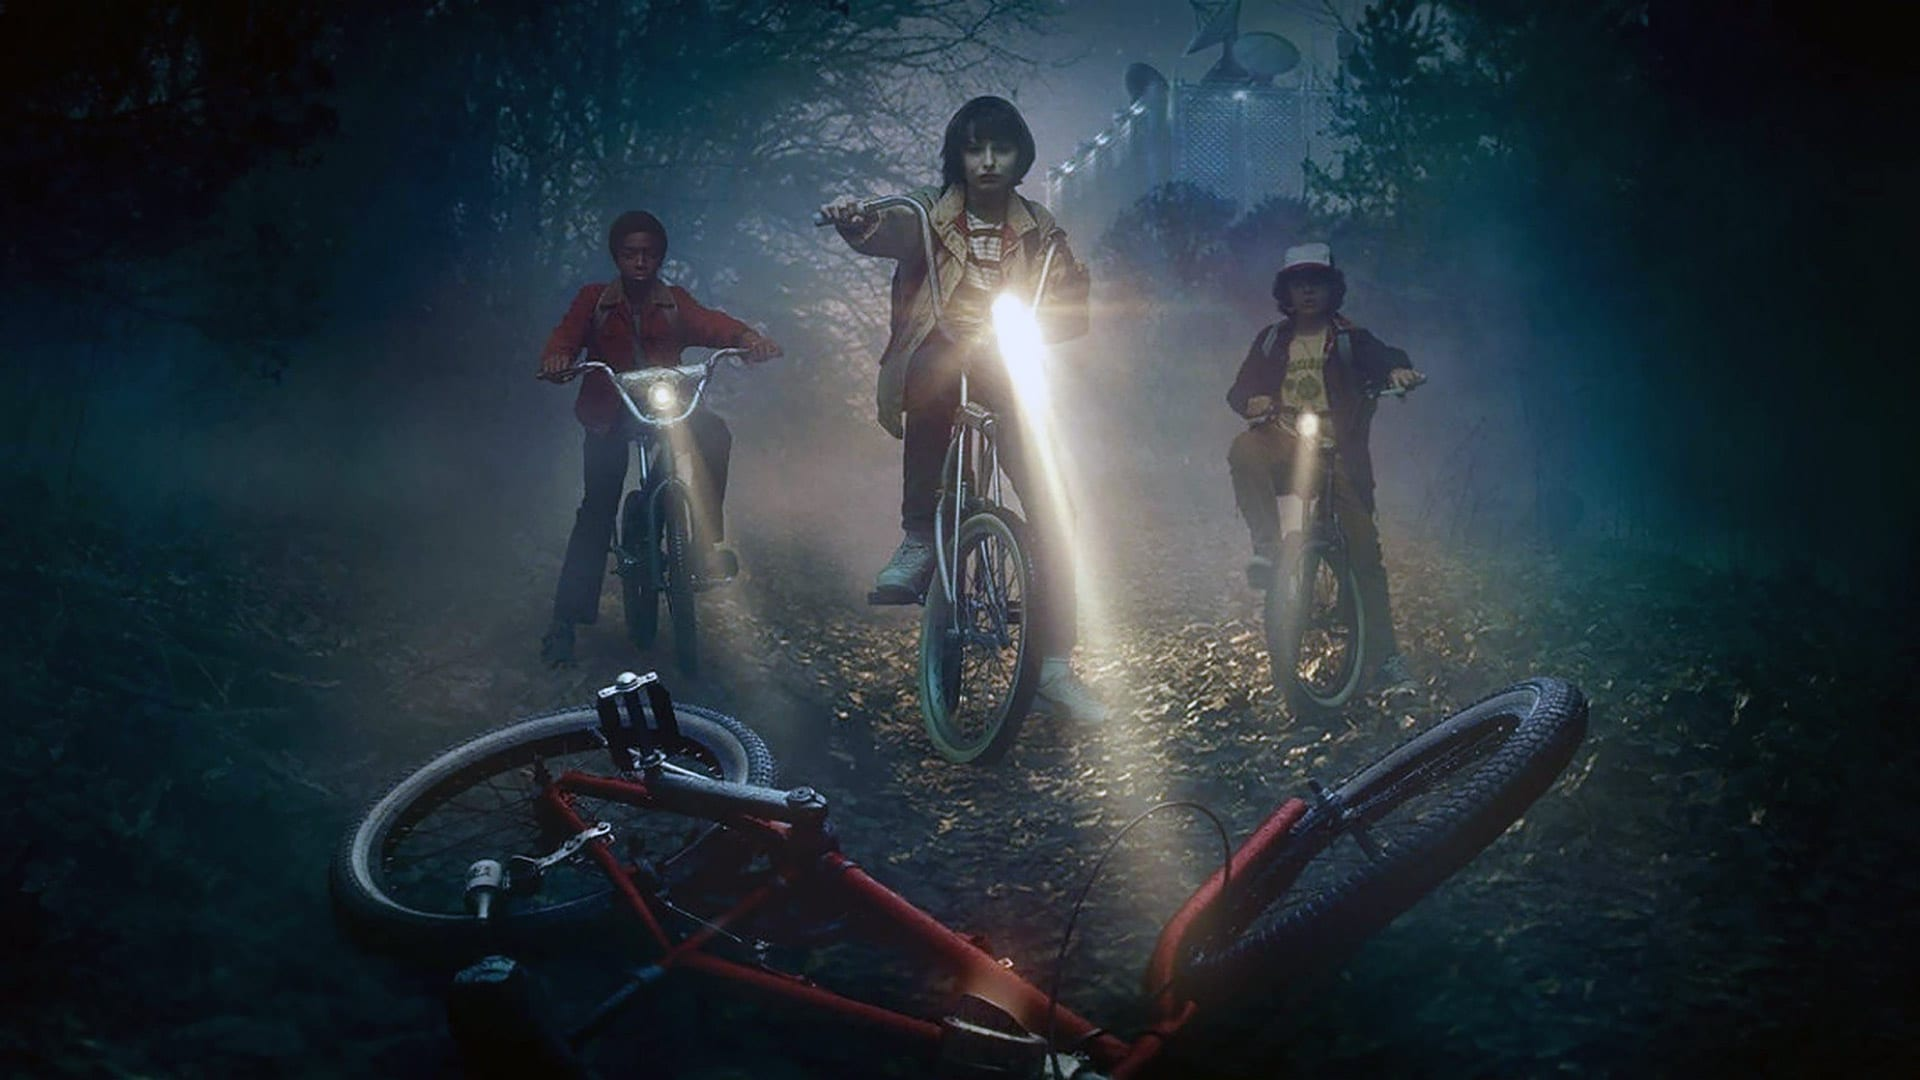 stranger-things-easter-eggs-references-article